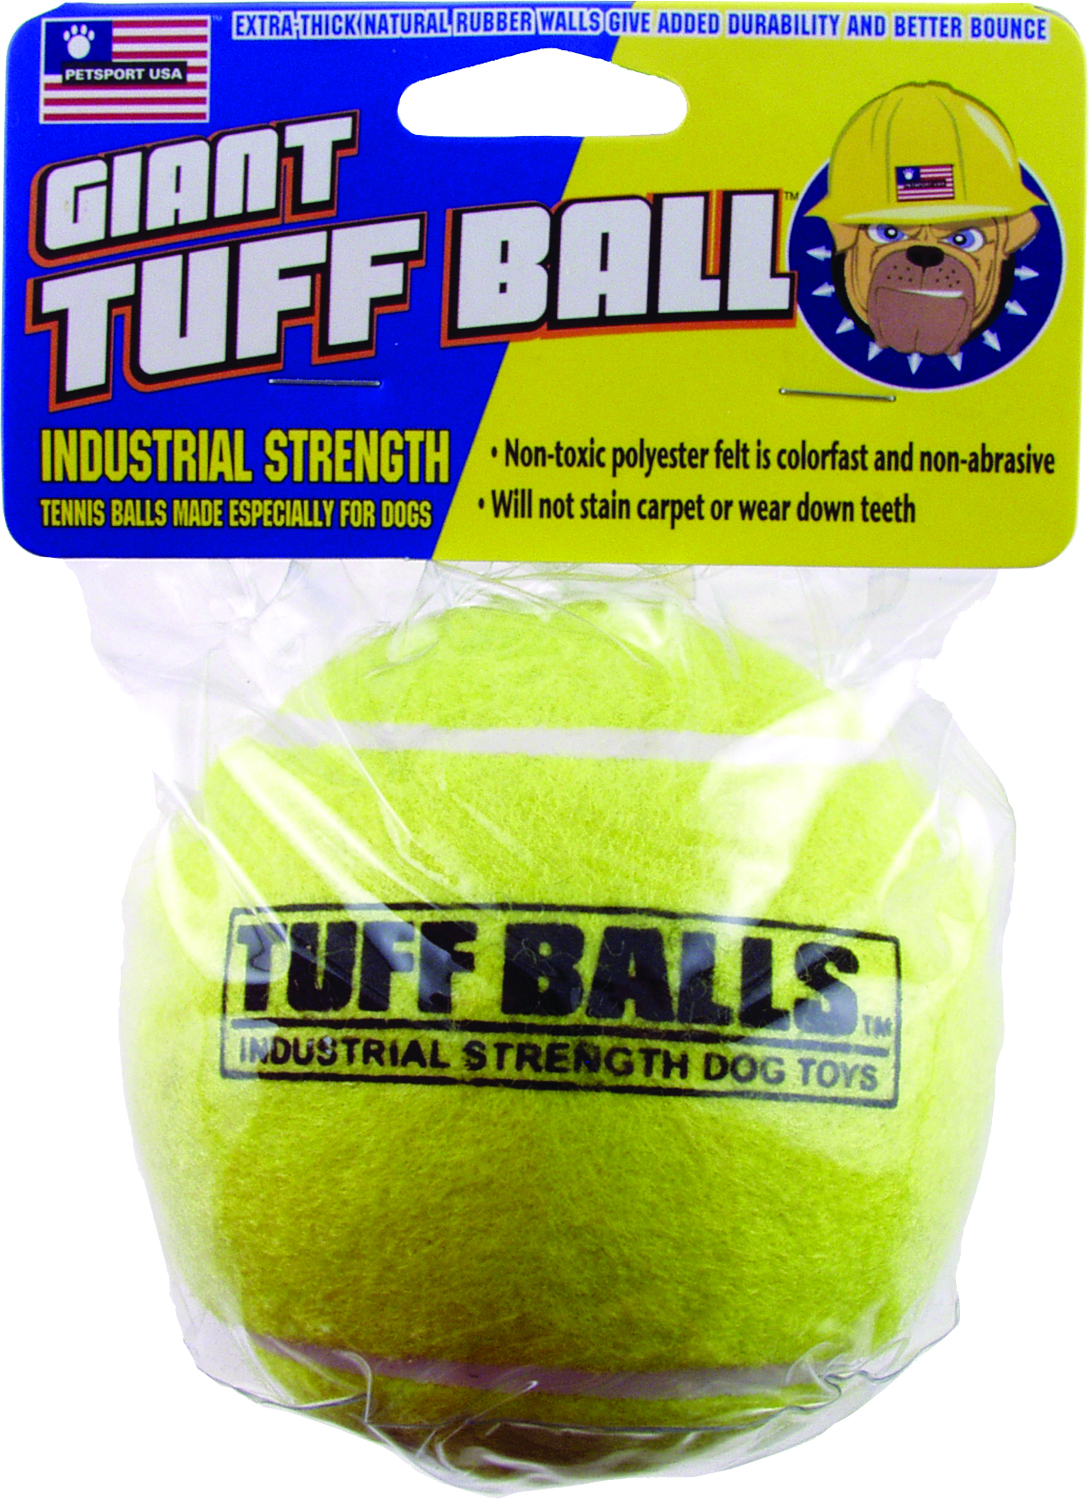 PETSPORT USA Giant Tuff Ball